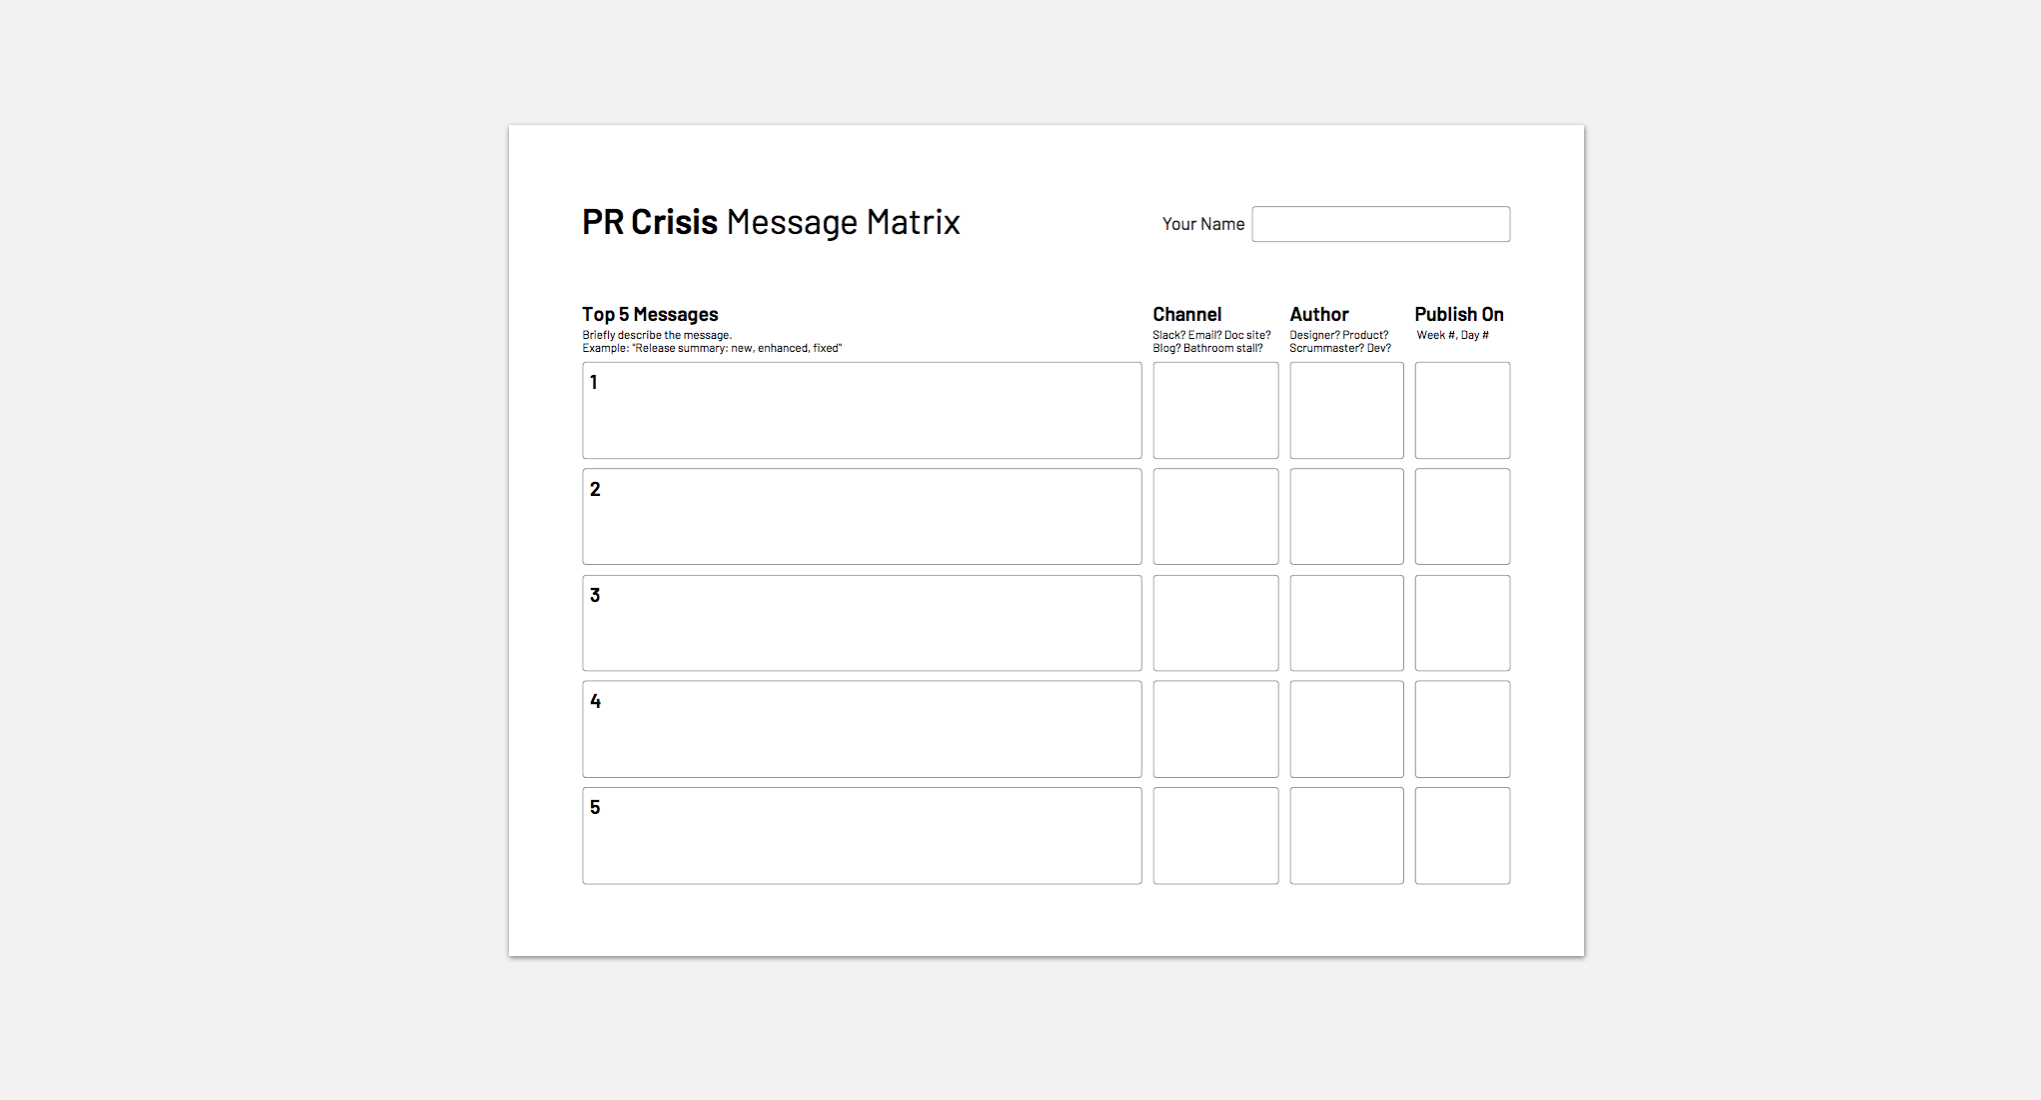 Paper template for message matrix of a PR crisis